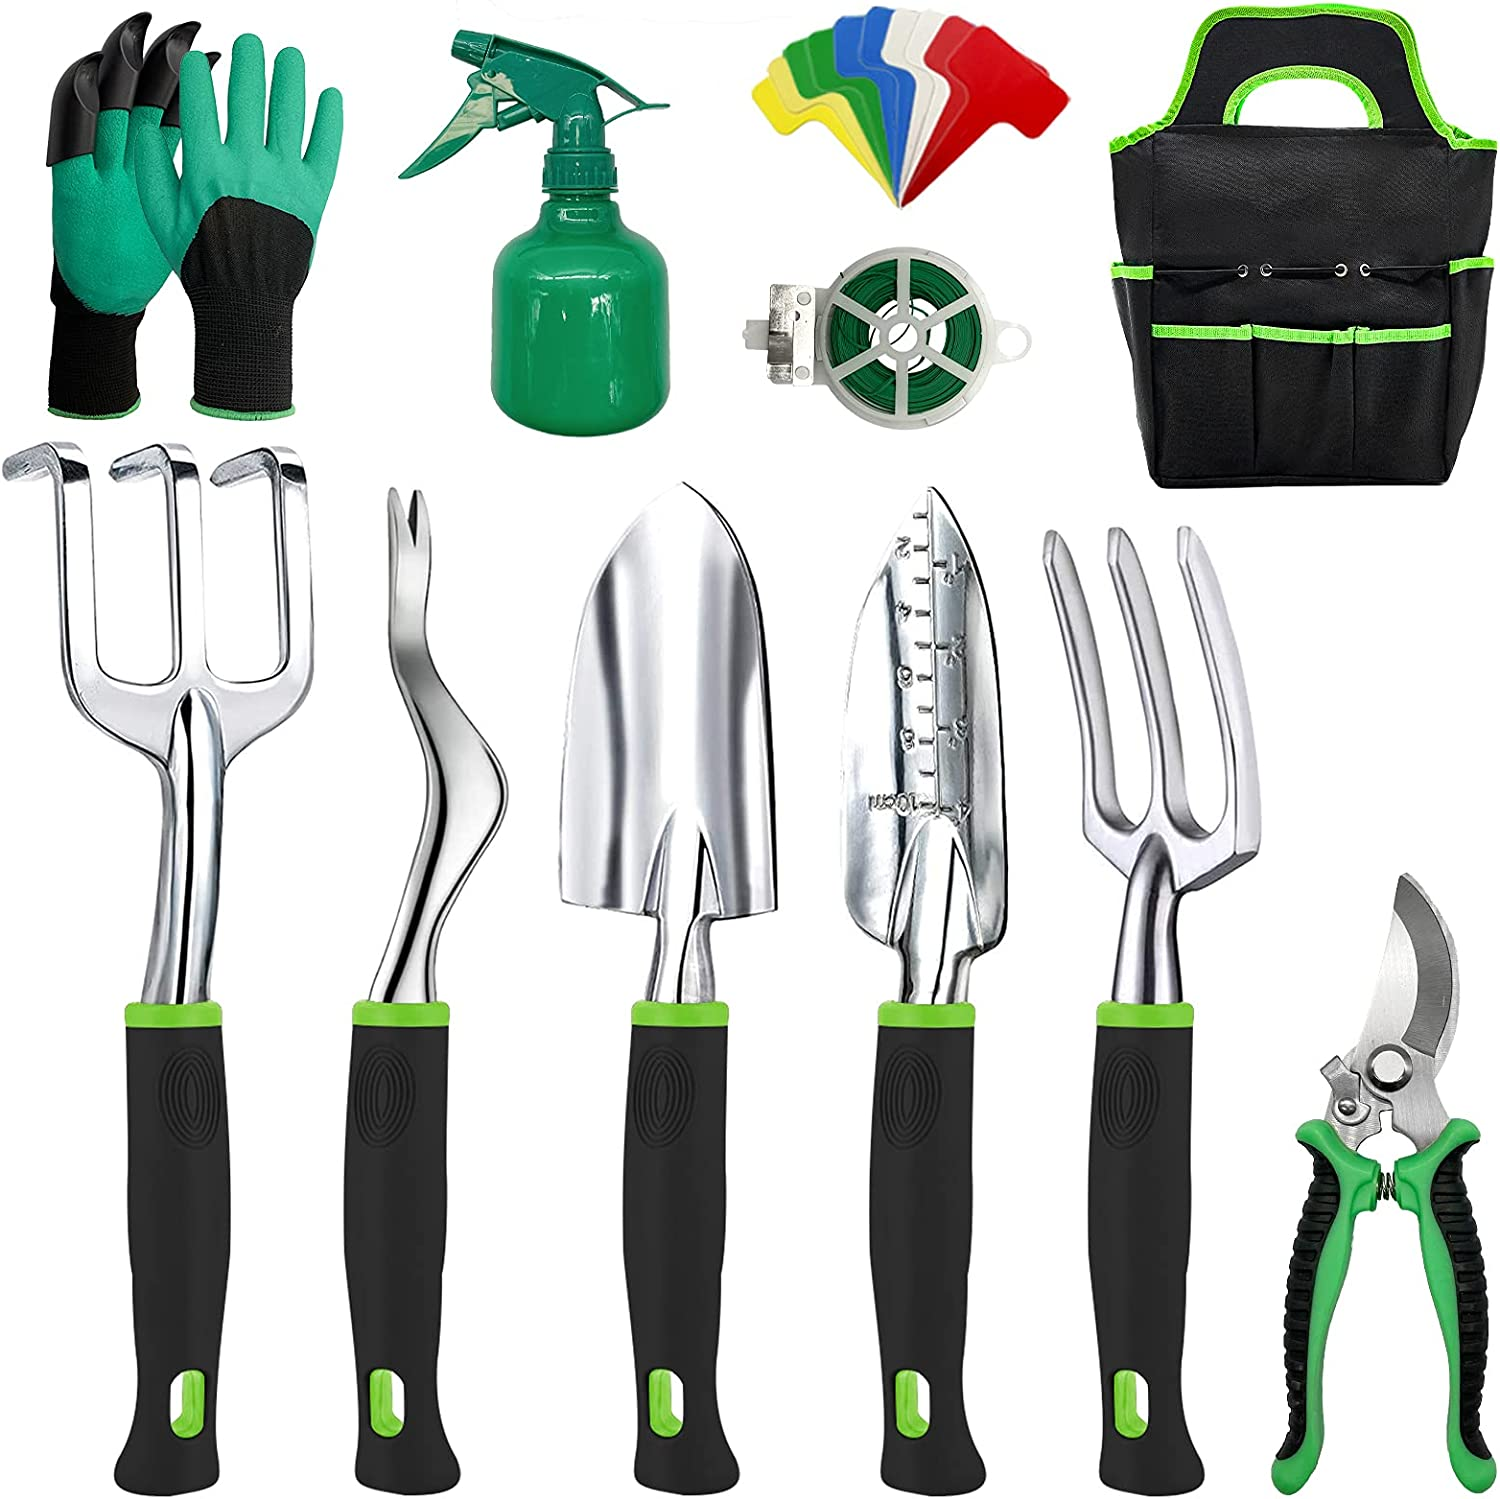 Gardening Tools-Heavy Duty Garden Tools with Gloves&Handbag-Aluminum Outdoor Garden Tools Set with Trowel Pruners and More - Garden Gifts for Men Or Women-Large Size Hand Tools,11pcs